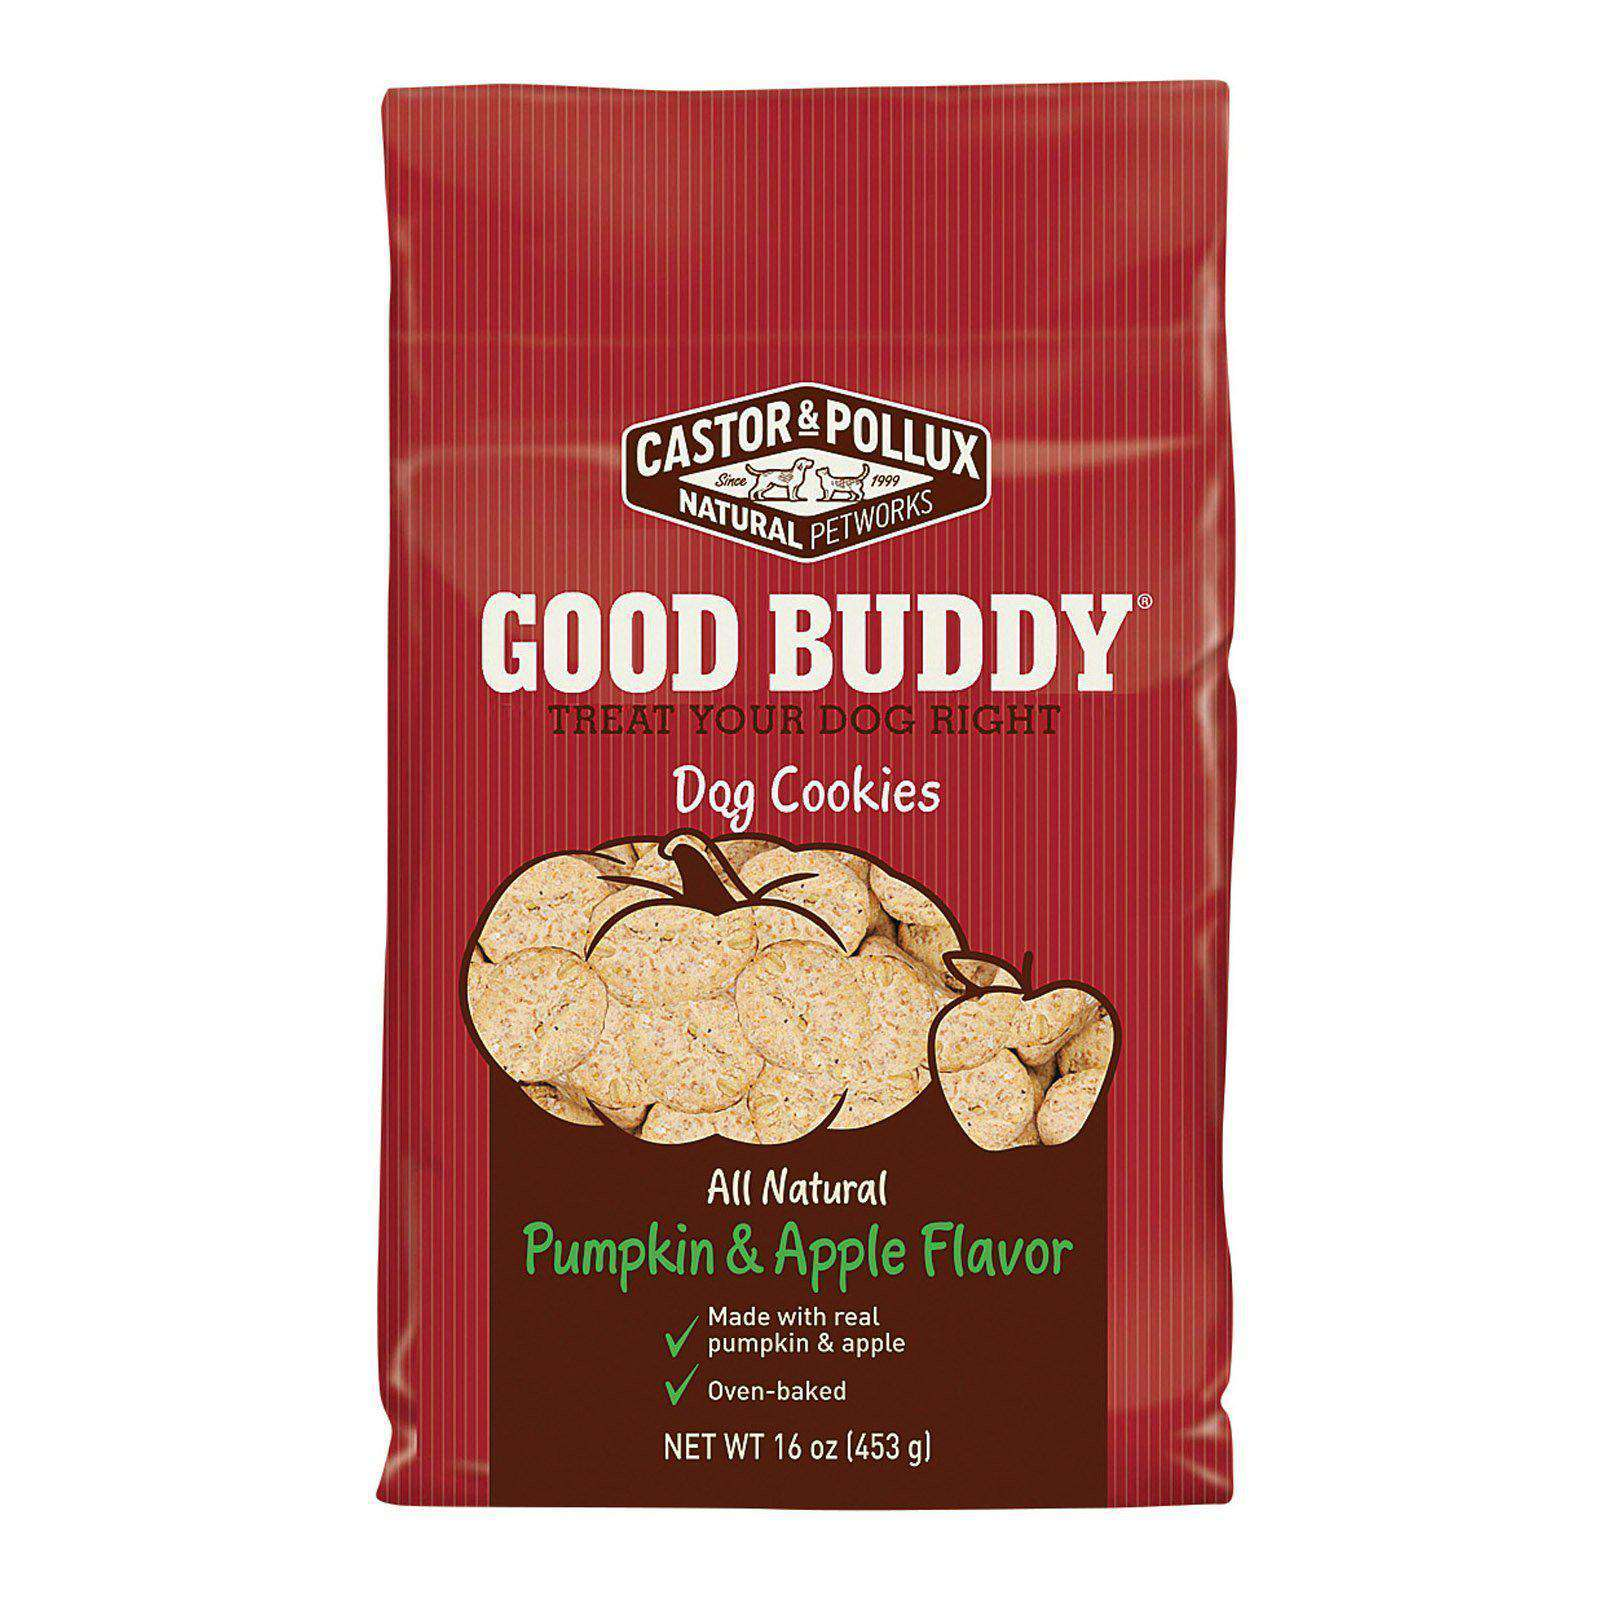 Castor And Pollux Dog Cookies - Pumpkin And Apple - Case Of 8 - 16 Oz.-Castor & Pollux-DirtyFurClothing